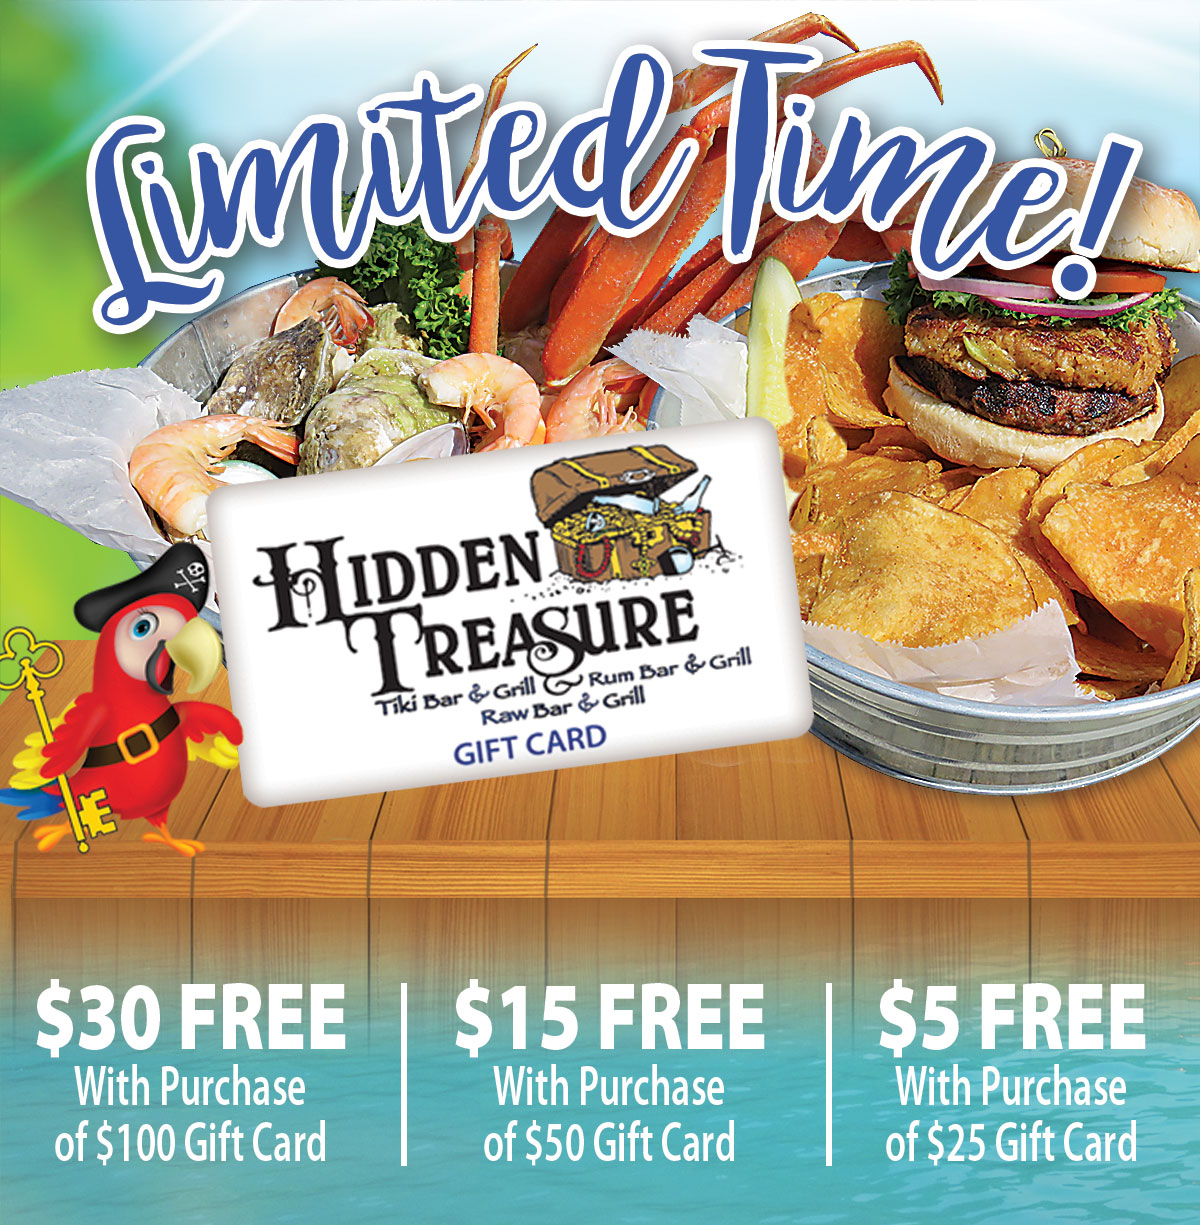 free restaurant gift card with gift card purchase hidden treasure